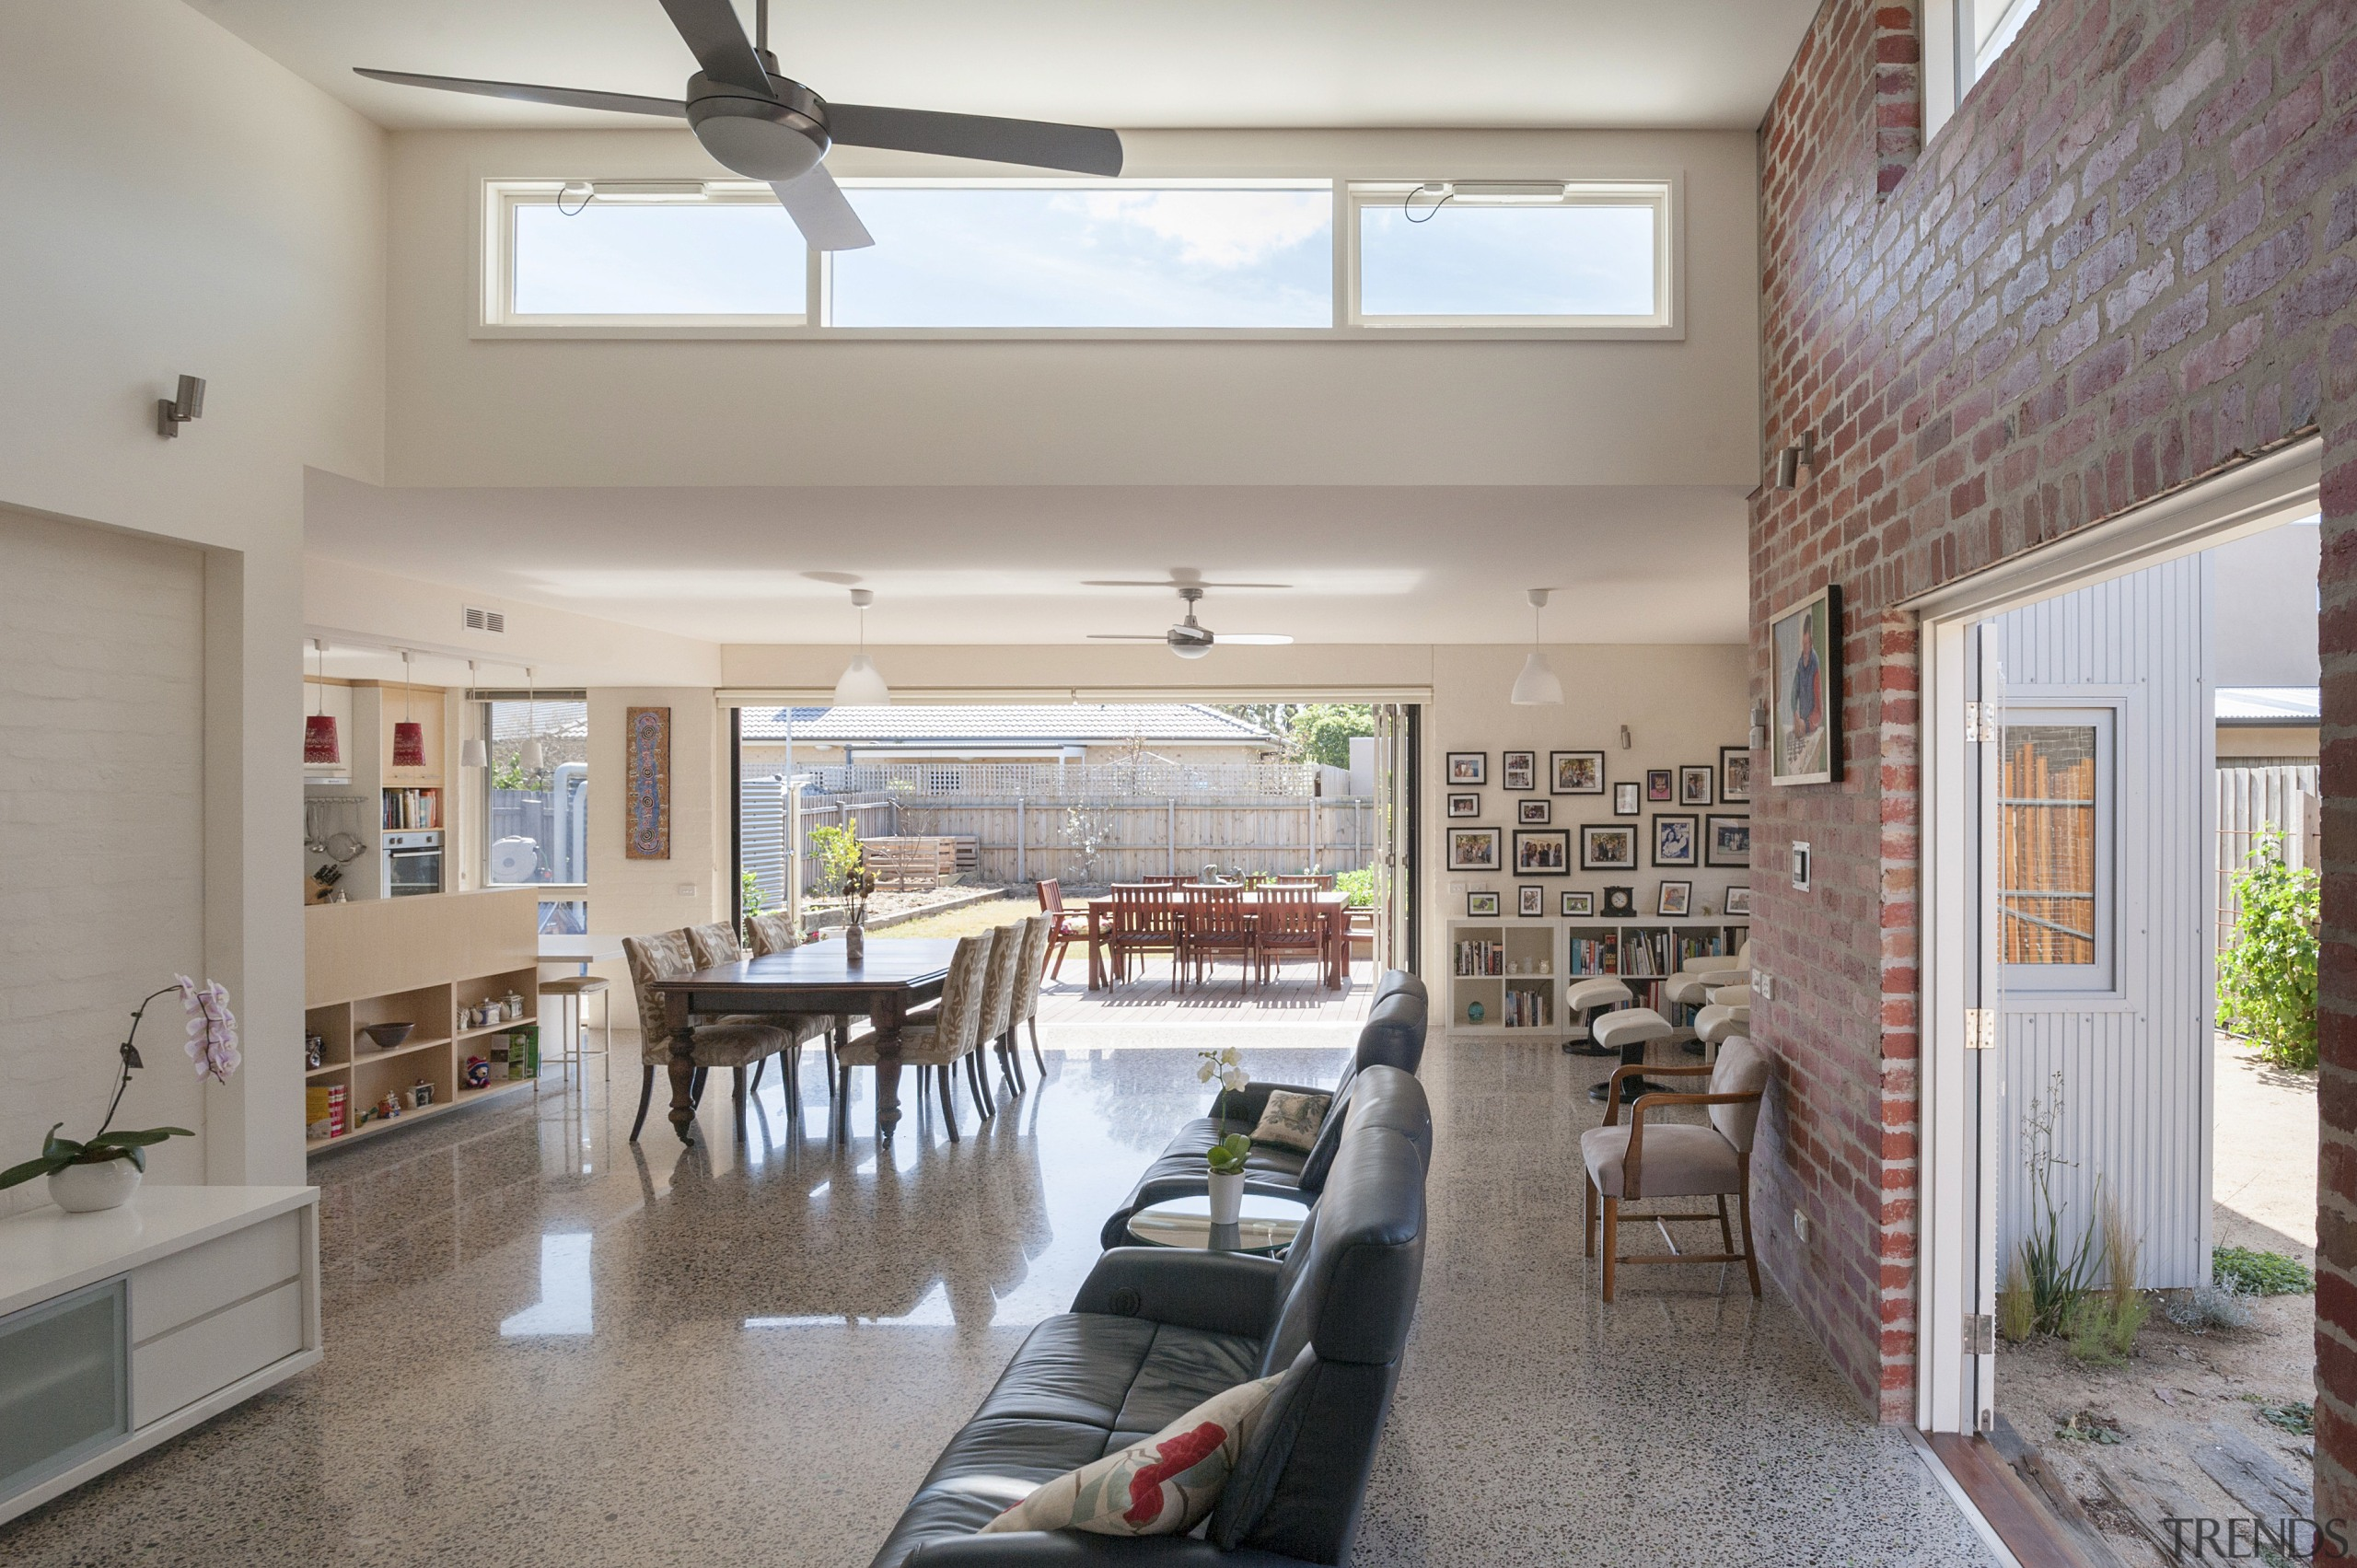 Multi-generational living with accessible design and a greenhouse ceiling, daylighting, home, house, interior design, living room, property, real estate, window, gray